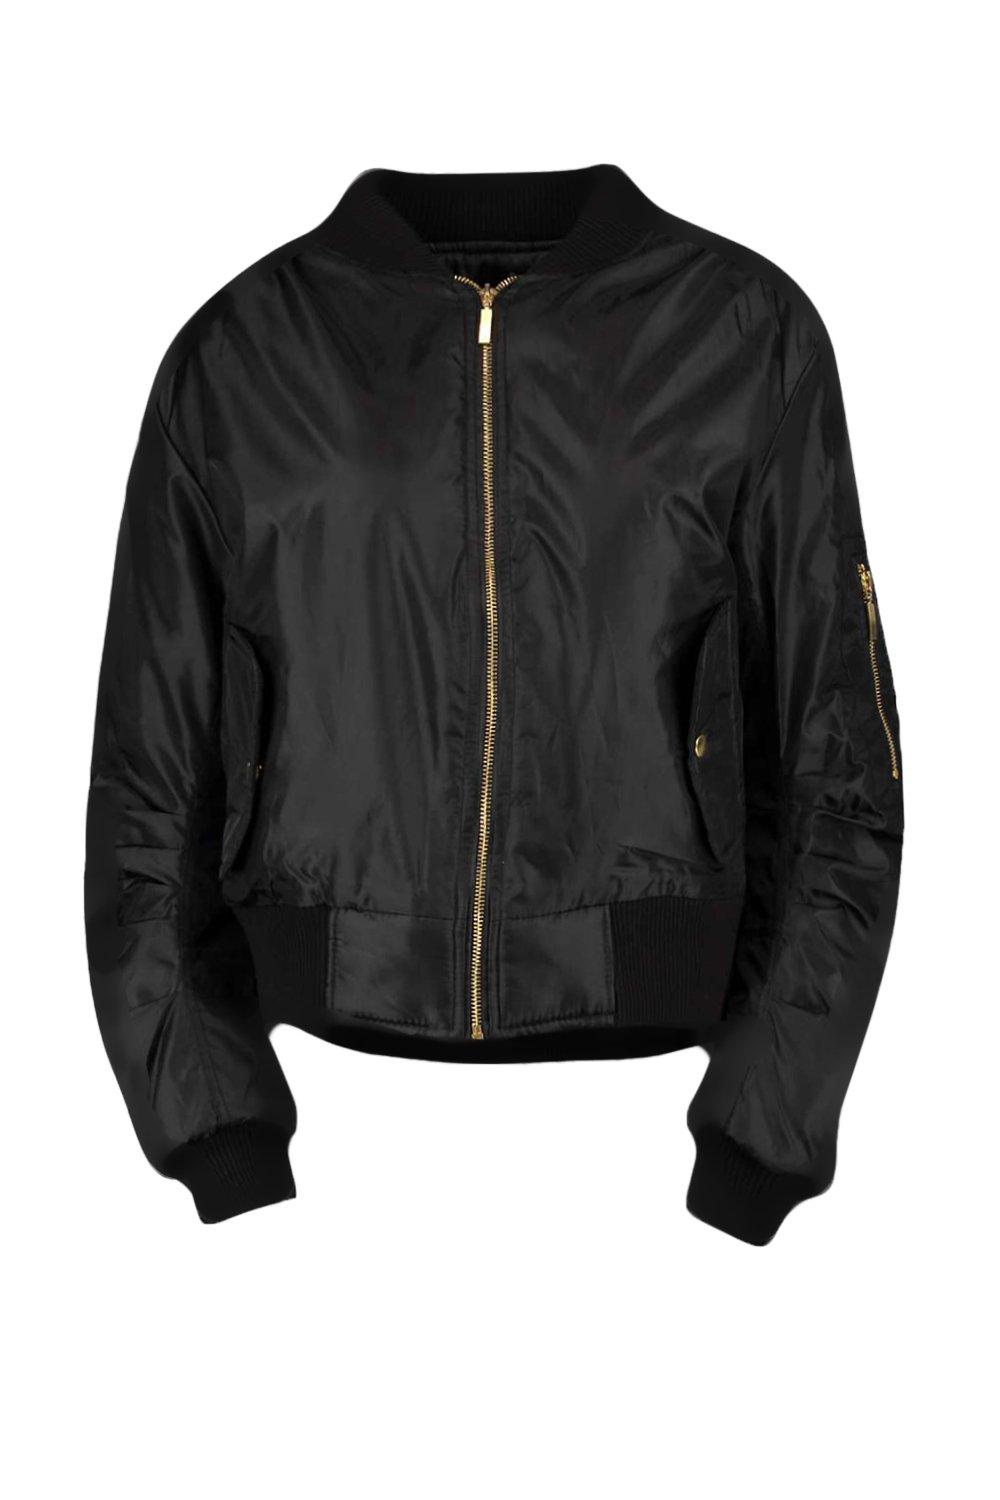 Shop All the Bomber Jackets on sale in your size today from hundreds of stores -- all in one place.